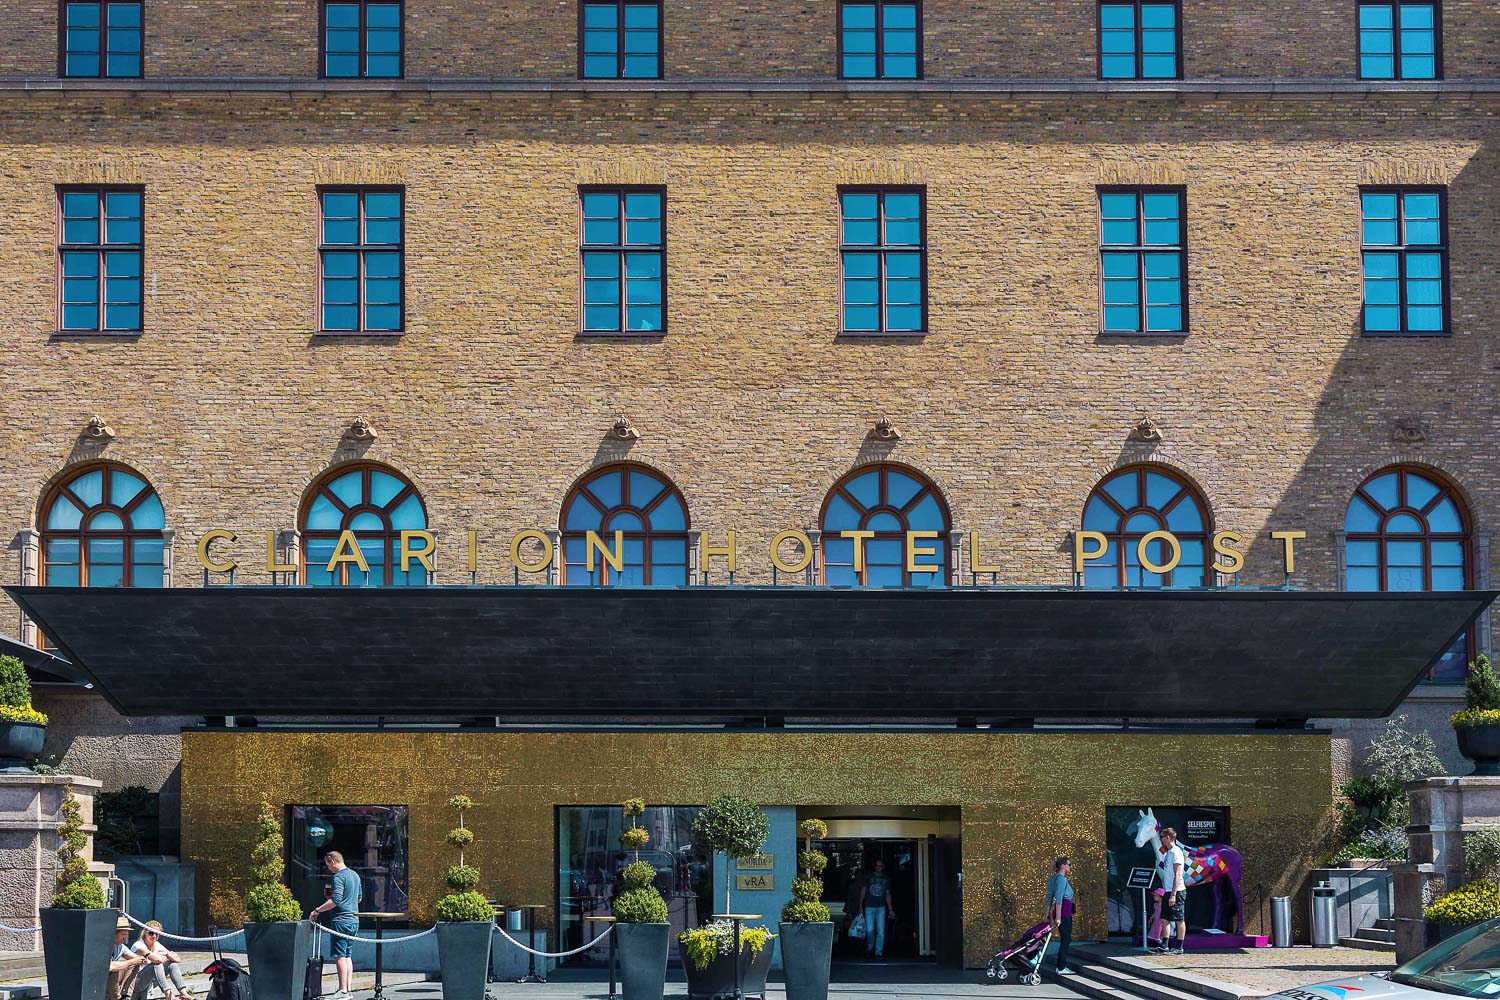 Clarion Hotel Post, a centrally-located hotel in a historic post office building in Gothenburg